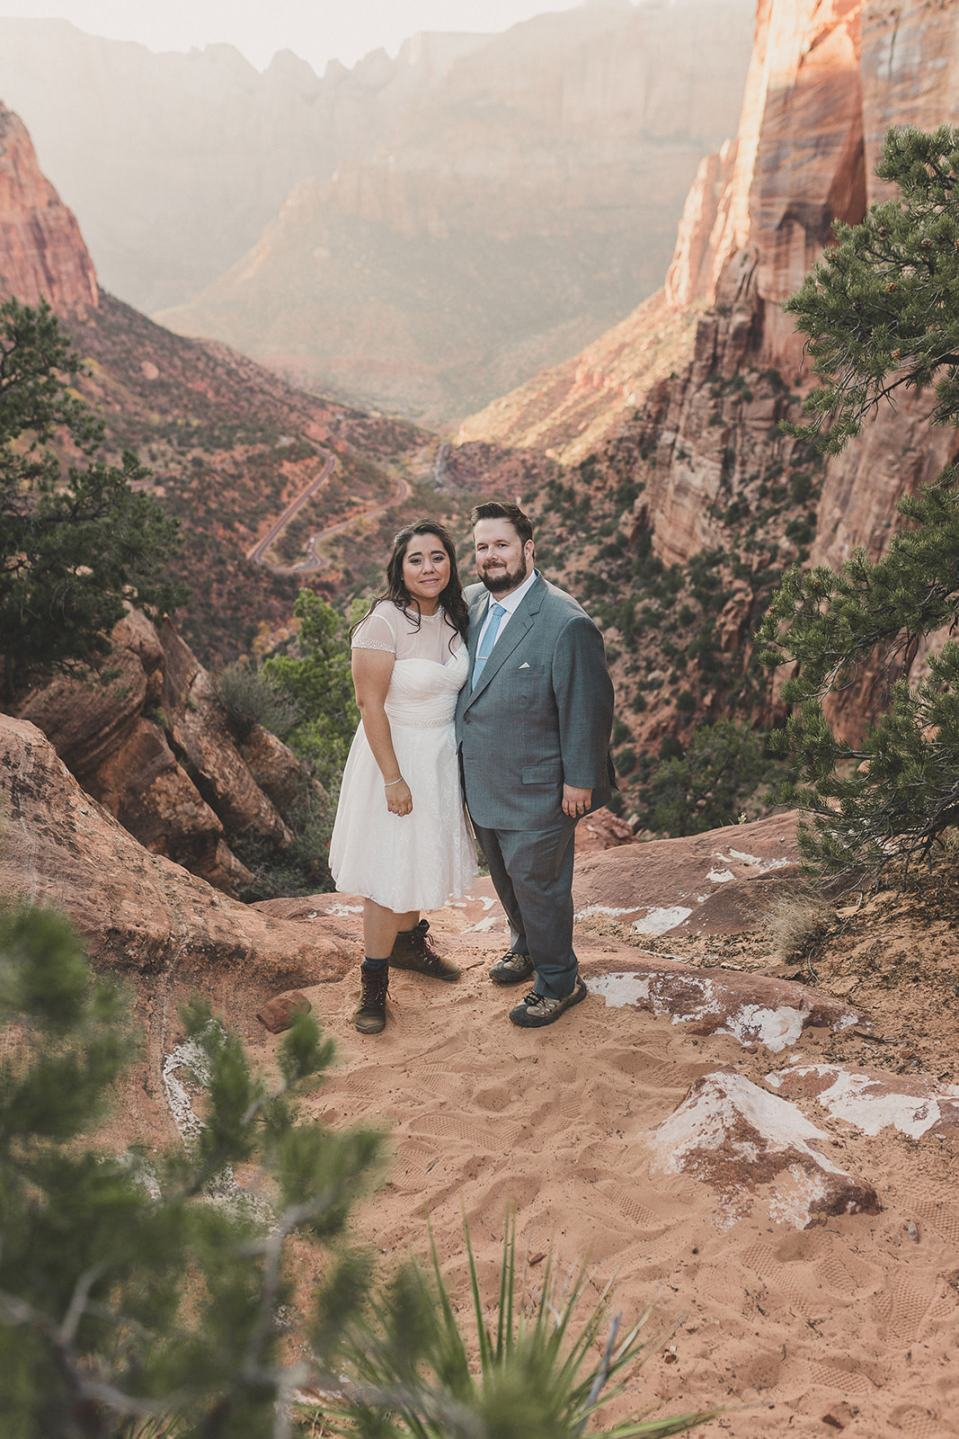 wedding portraits in Utah National Park by Taylor Made Photography